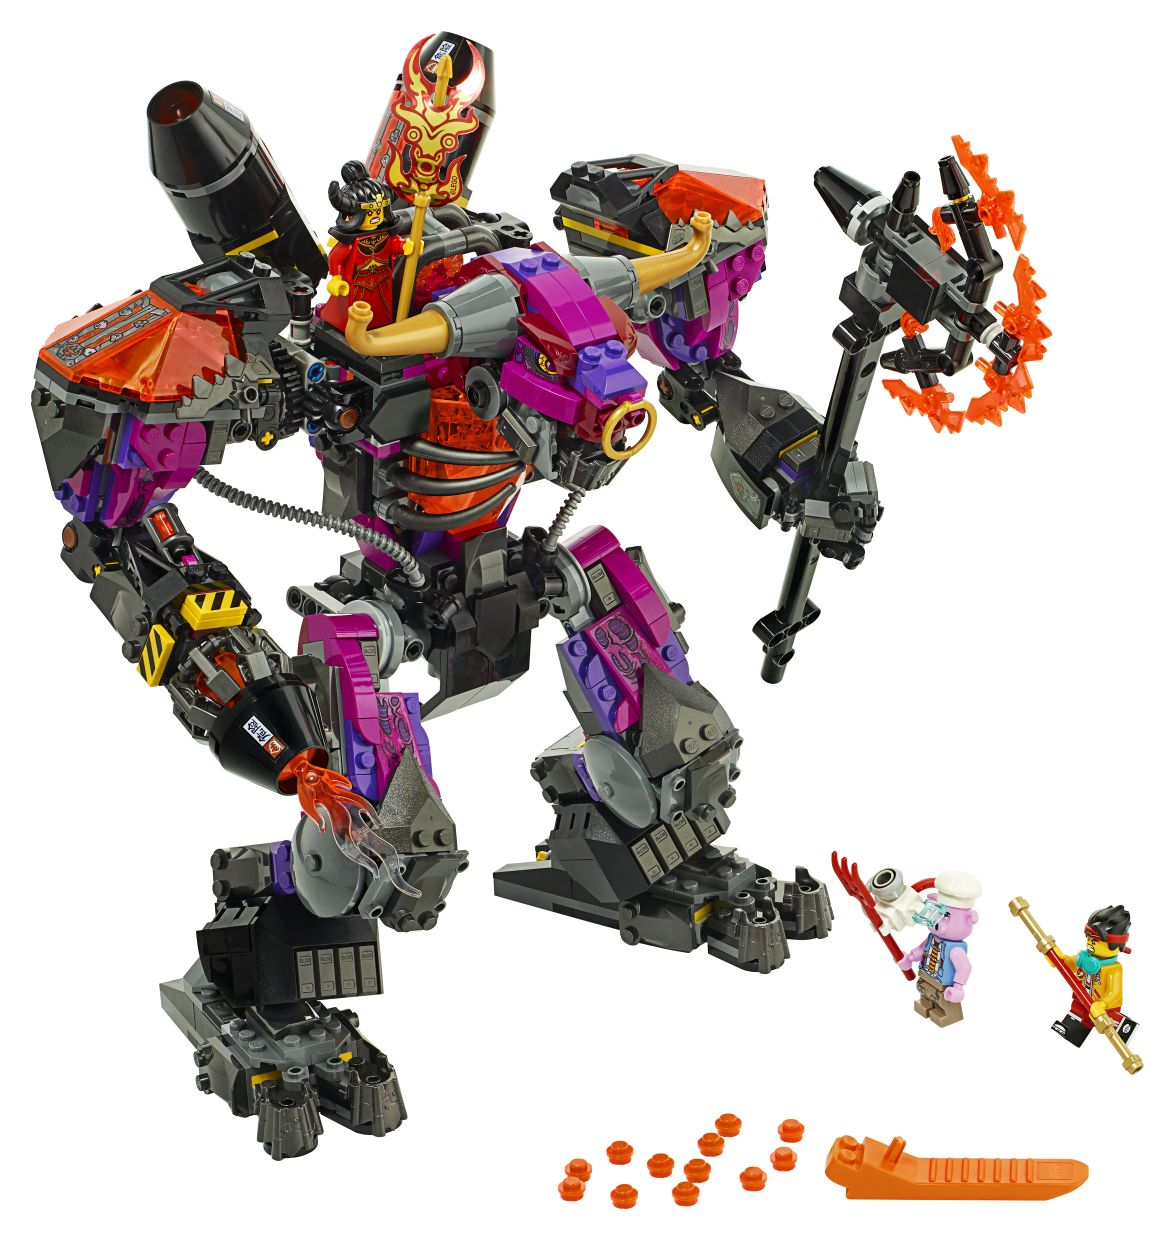 The Demon Bull King is the main antagonist of the Monkie Kid range.